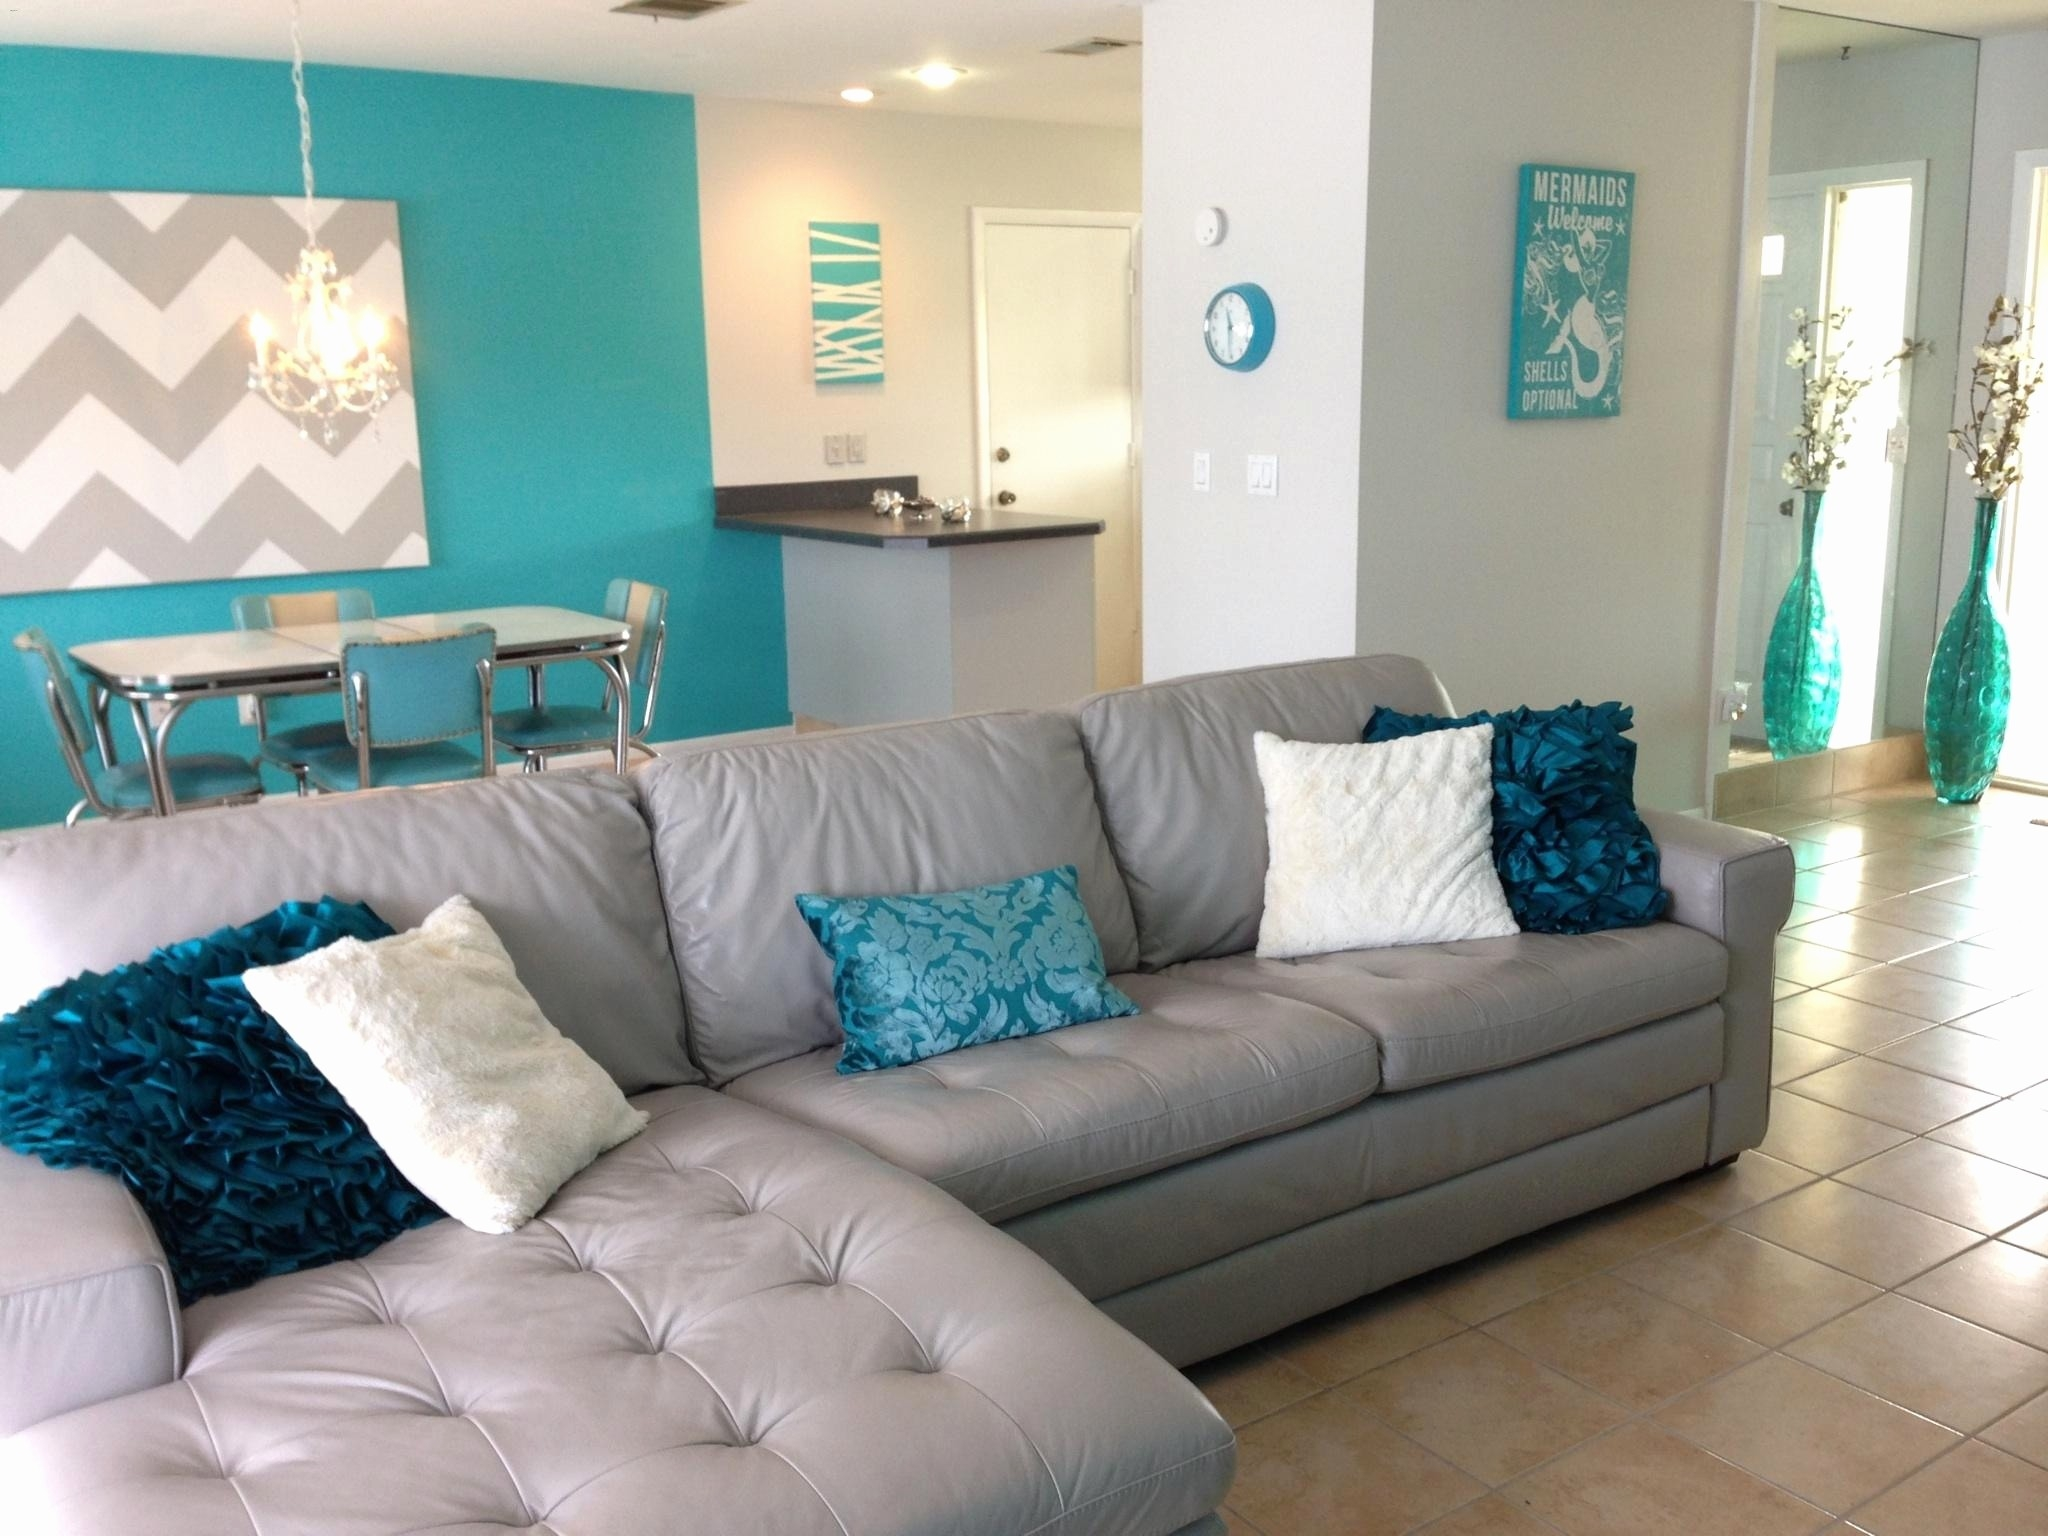 10 Inspirational Living Room Ideas Duck Egg Blue Homeremodel – layjao